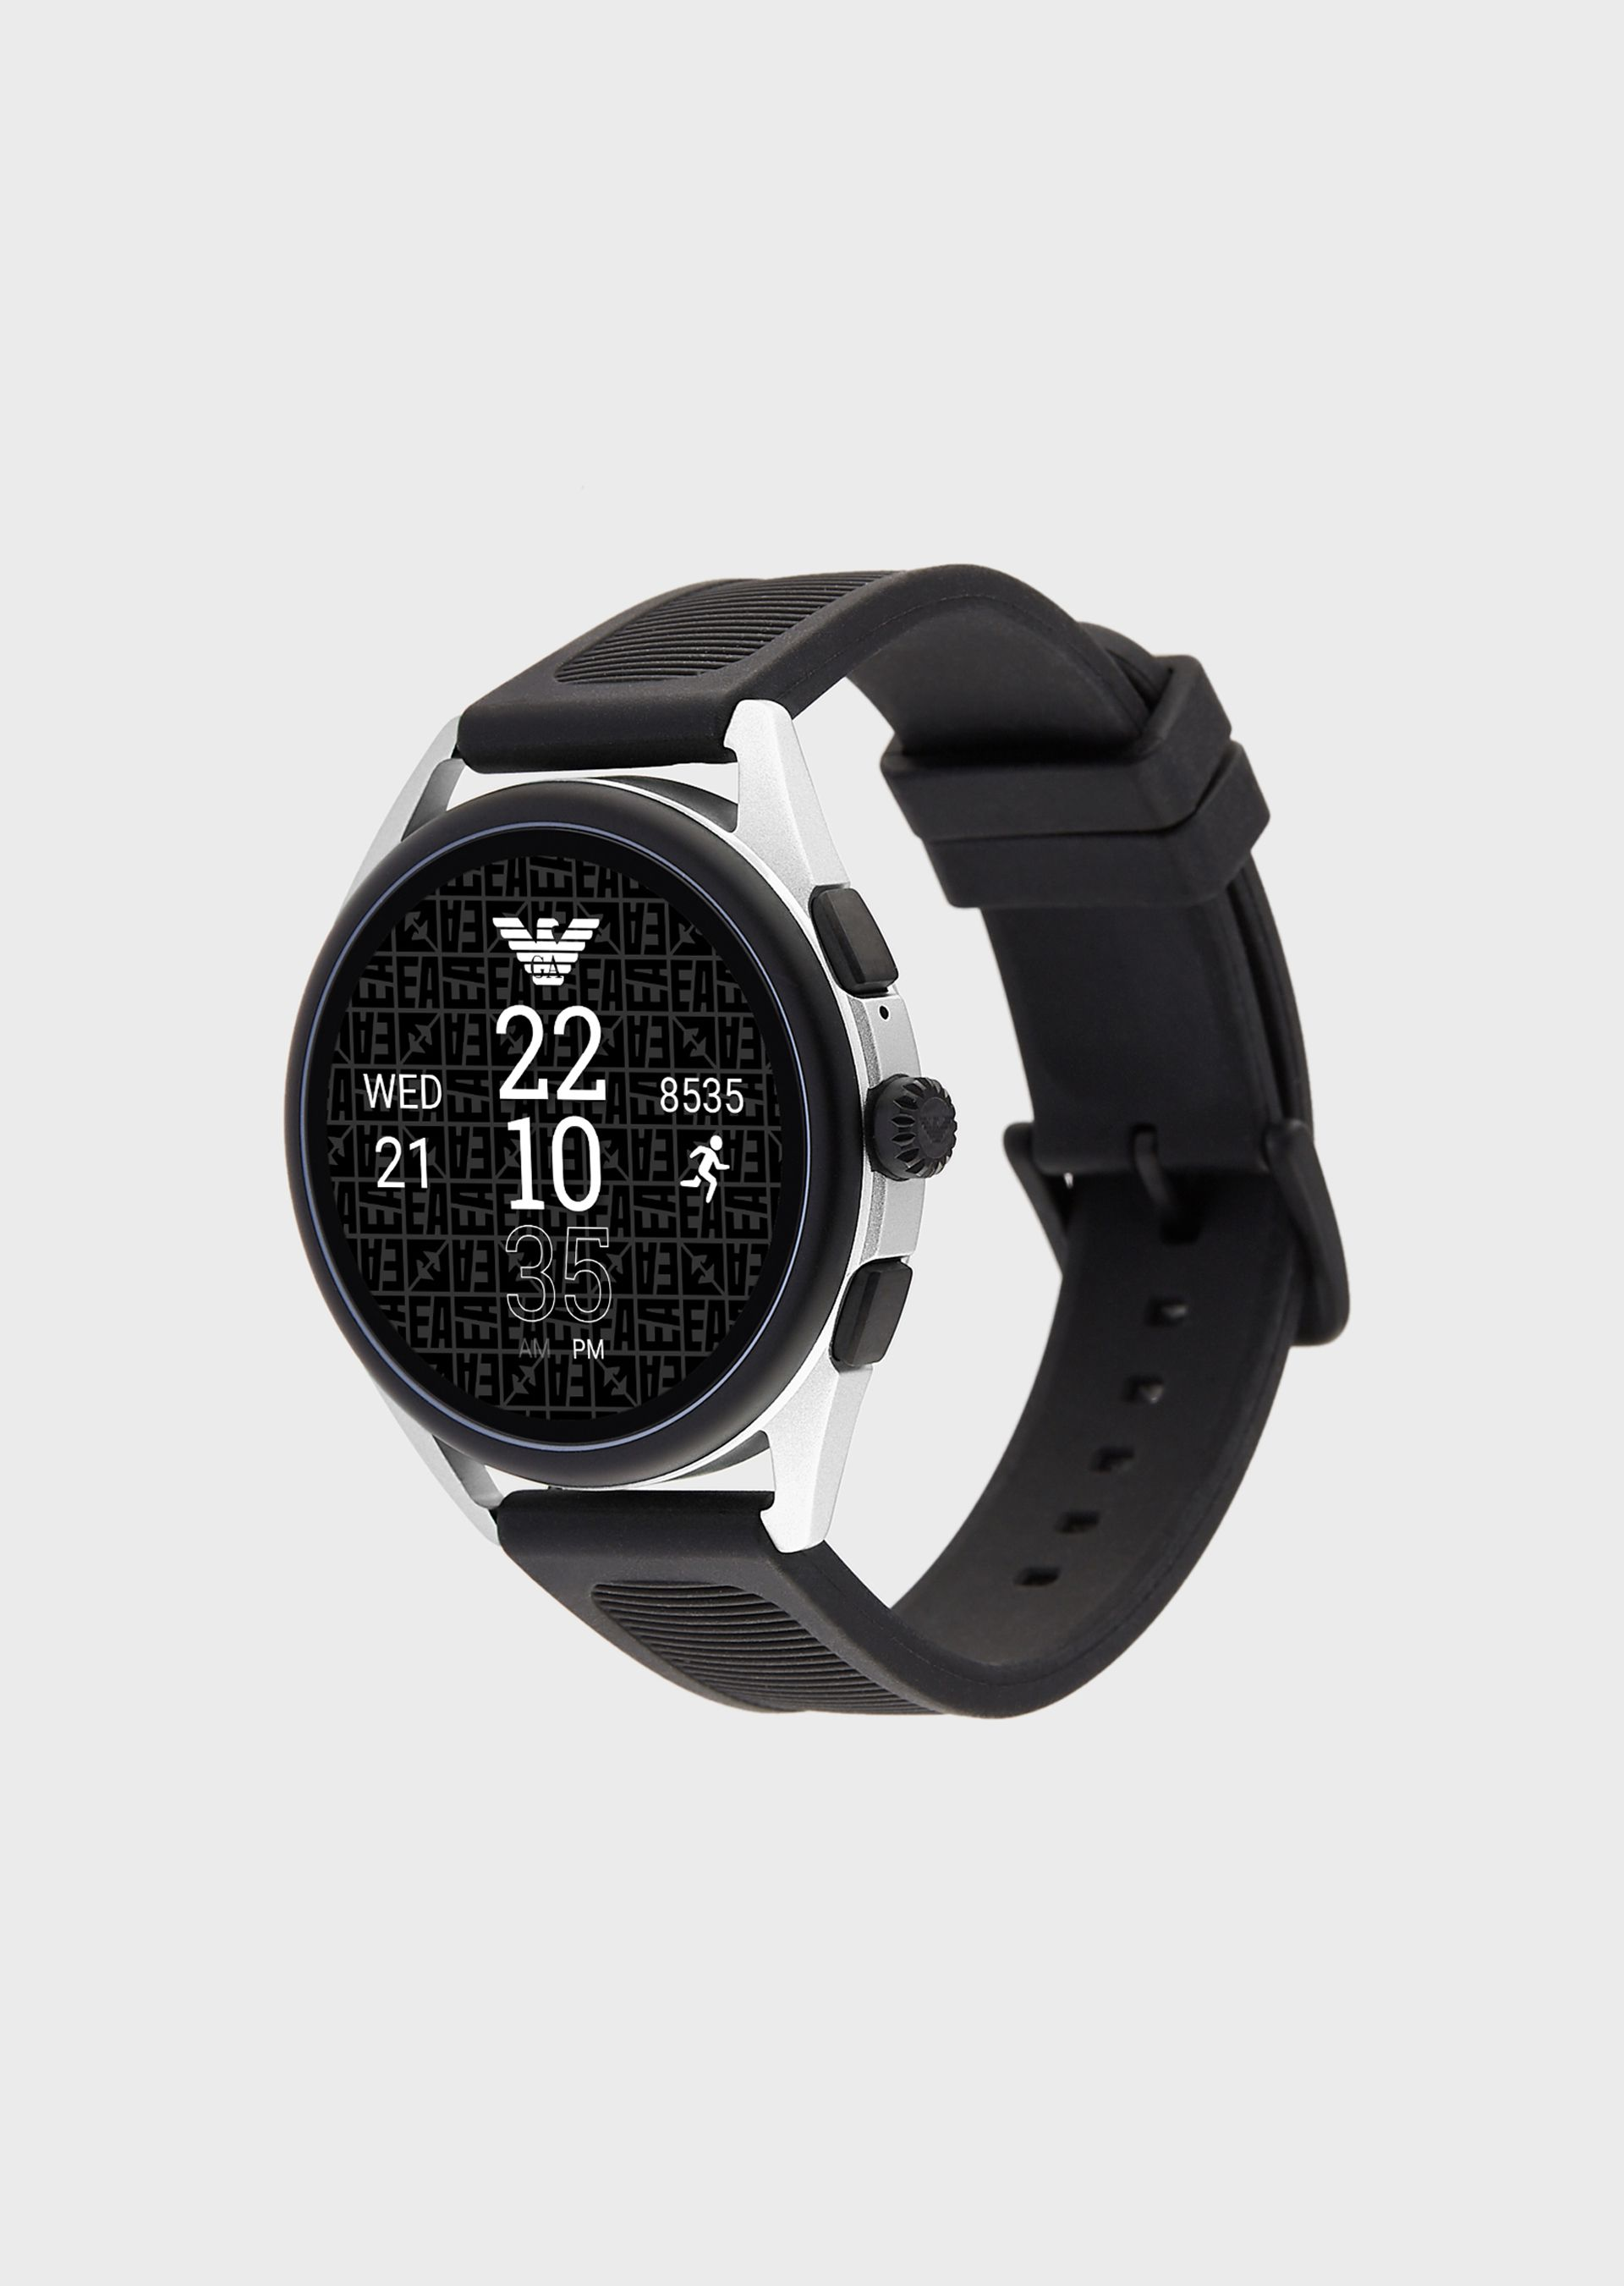 fashionable mens smartwatches